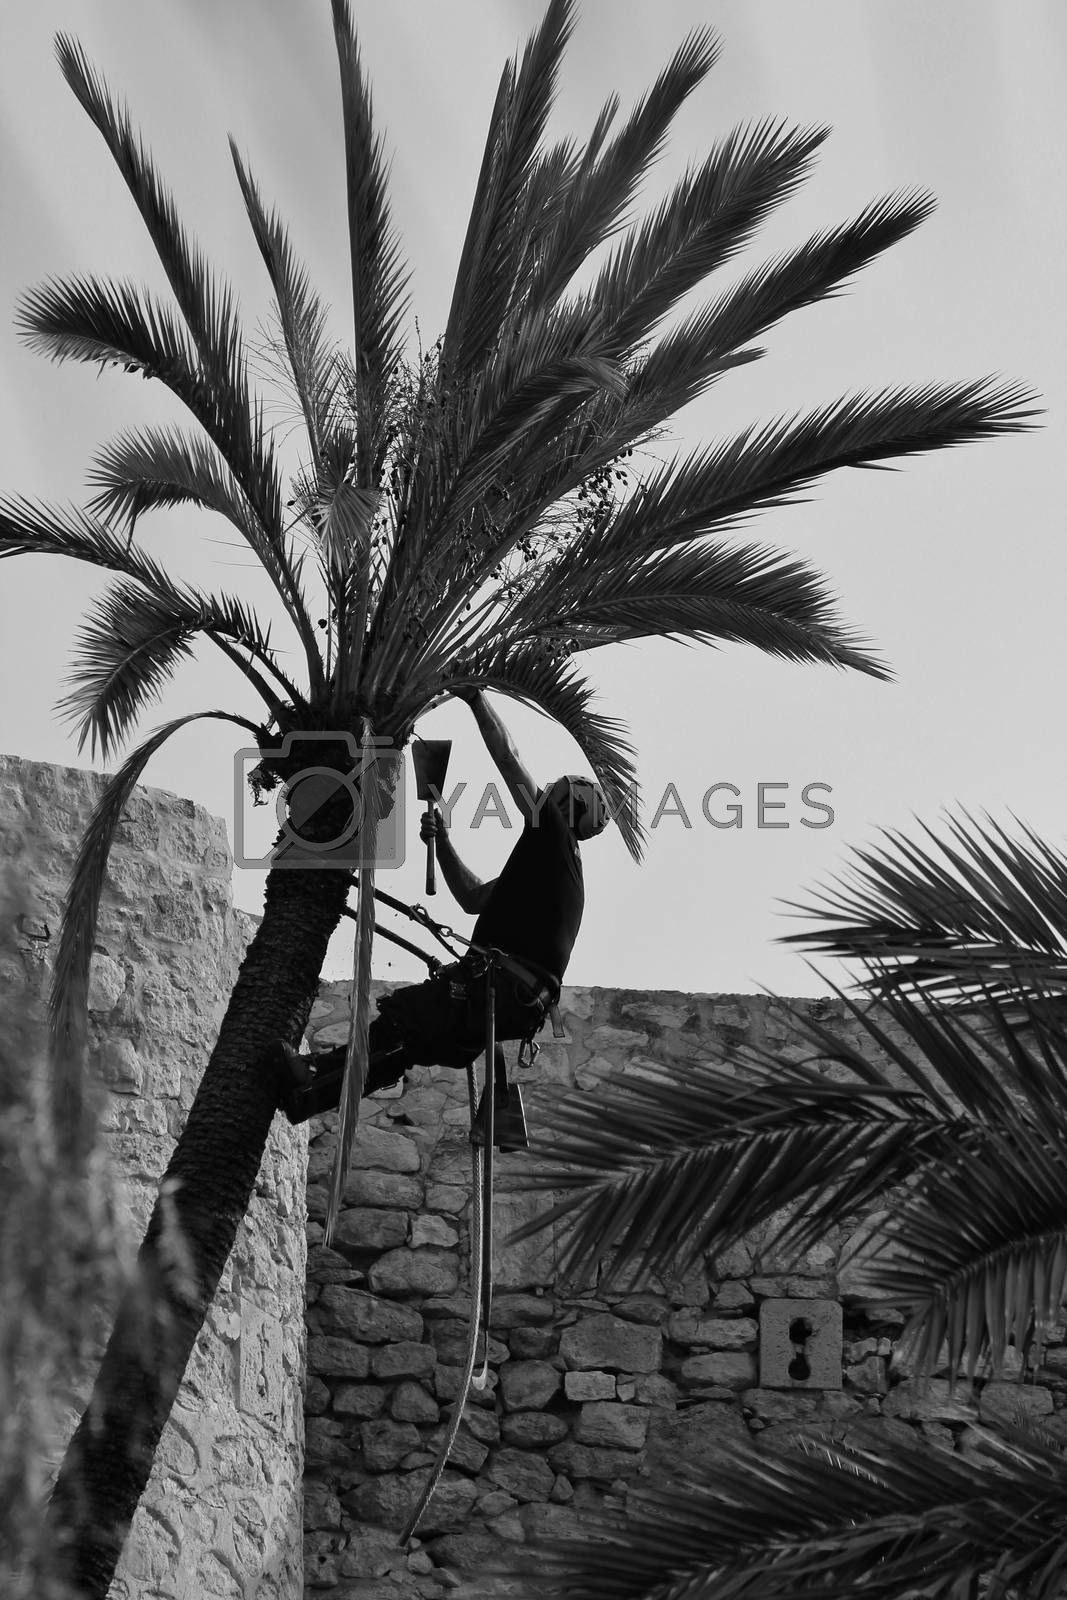 Elche, Alicante, Spain- November 18, 2020: Man climbing and doing pruning works on palm tree in a sunny day of Autumn